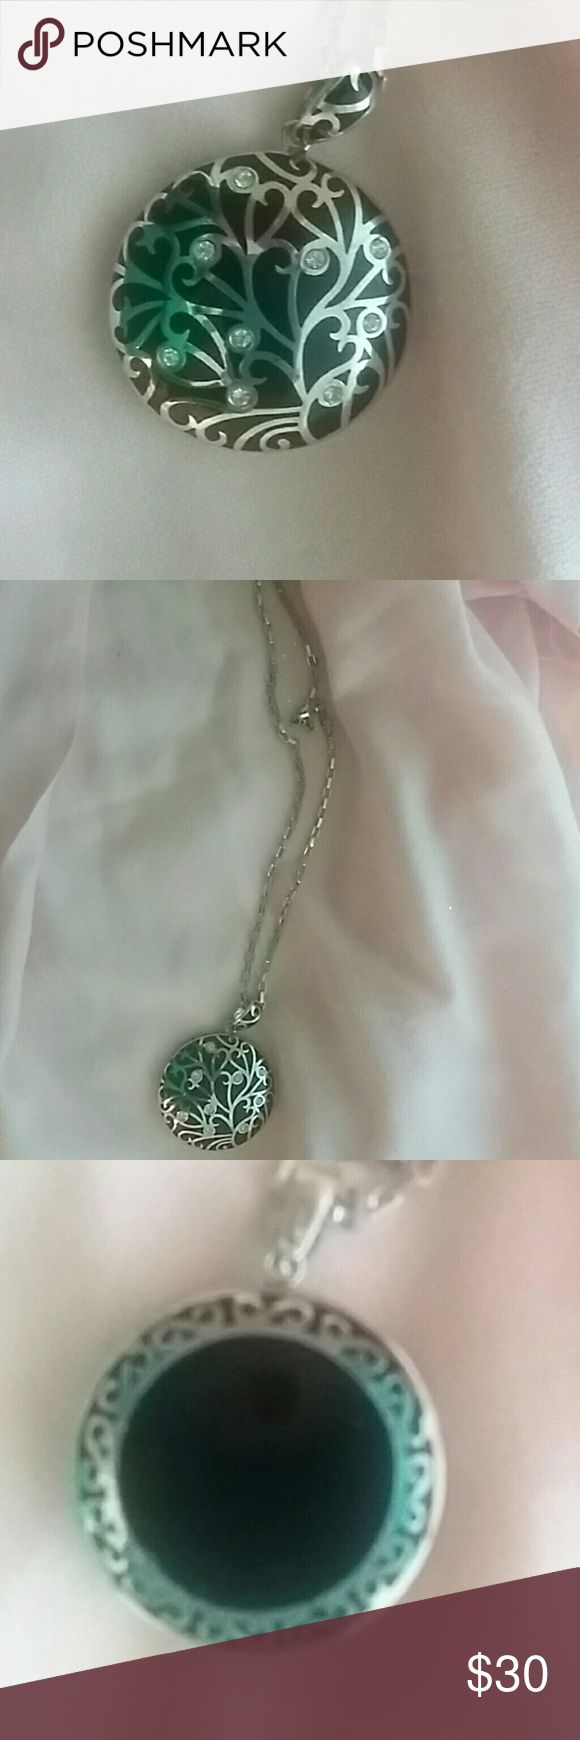 Large black and silver toned necklace Larve black and silver pendant with rhintestones, long chain, costume jewelry. Gift from Australia. Worn 2x. Good condition. Jewelry Necklaces